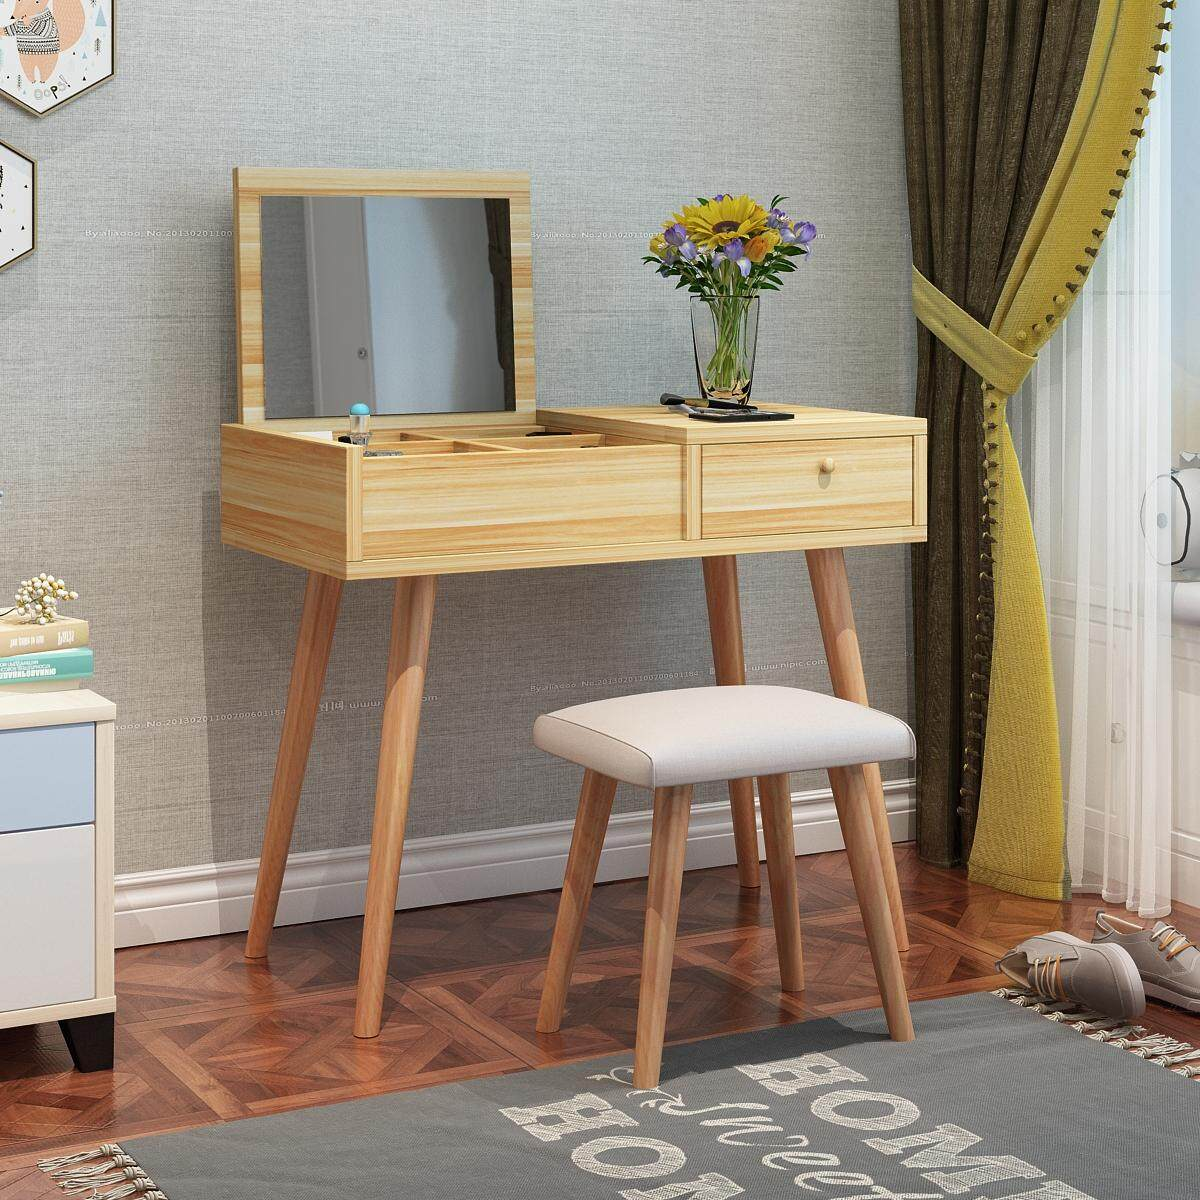 Dressing Table Solid Wood European Bedroom Dressing Table with Stool, Princess Makeup Cabinet Luxury flip Small Dressing Table